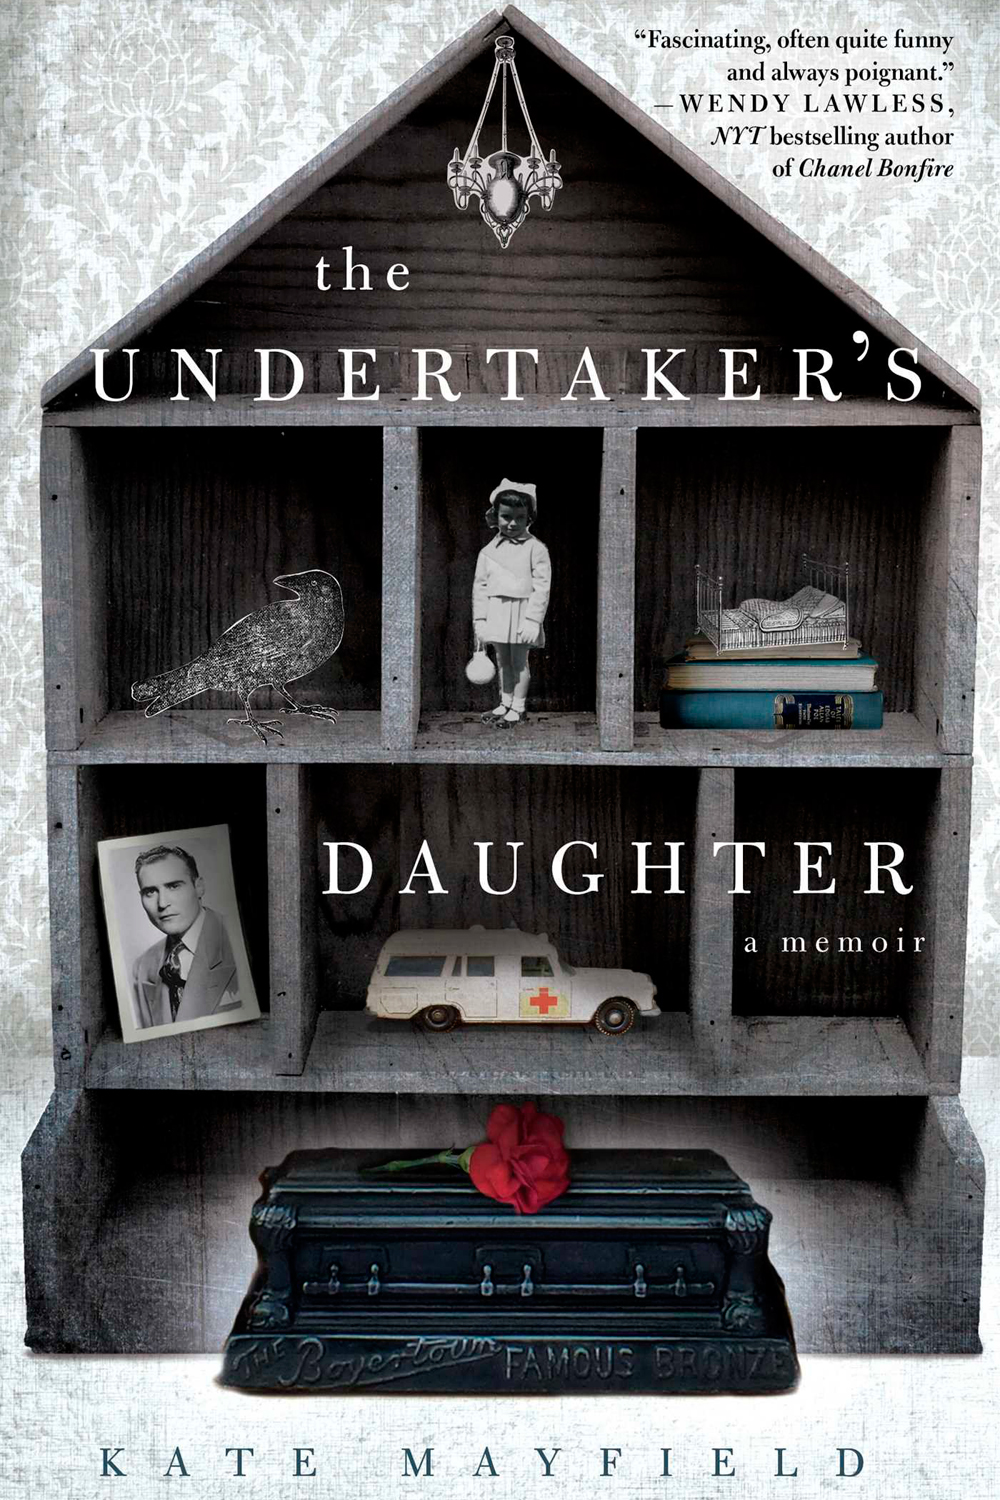 The-Undertakers-Daughter-cover image.jpg